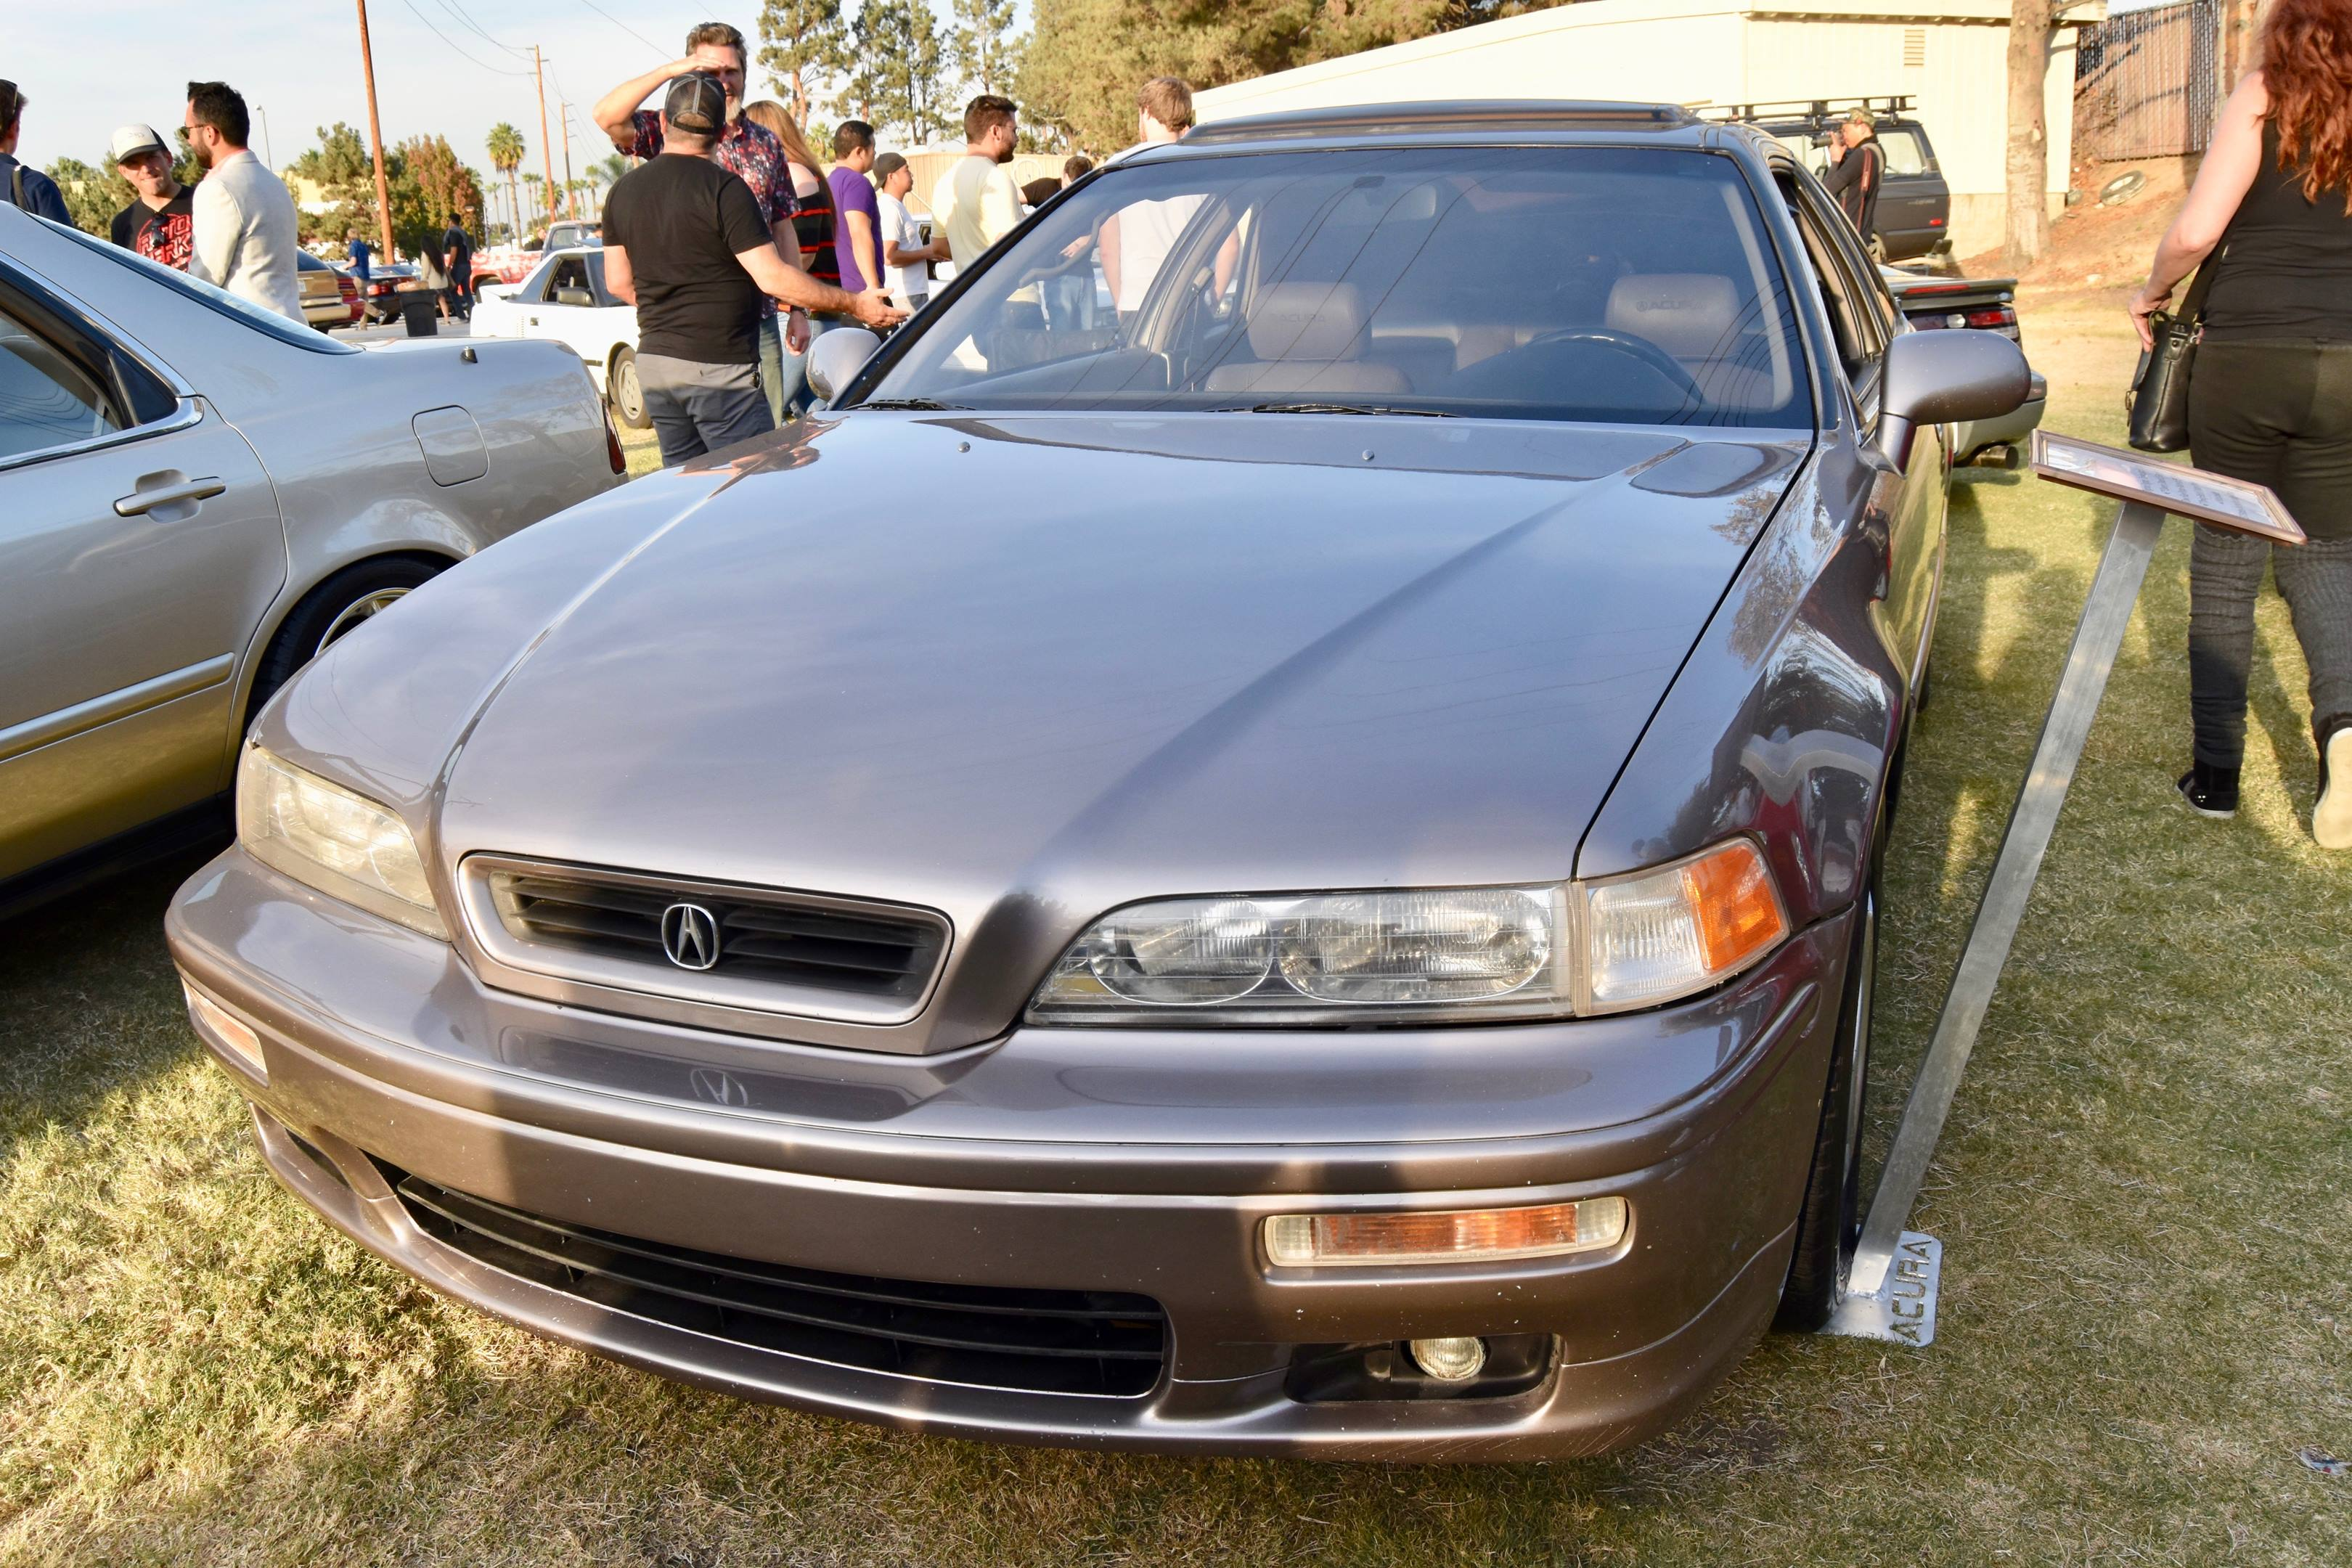 1994 Acura Legend LS Coupe front 3/4